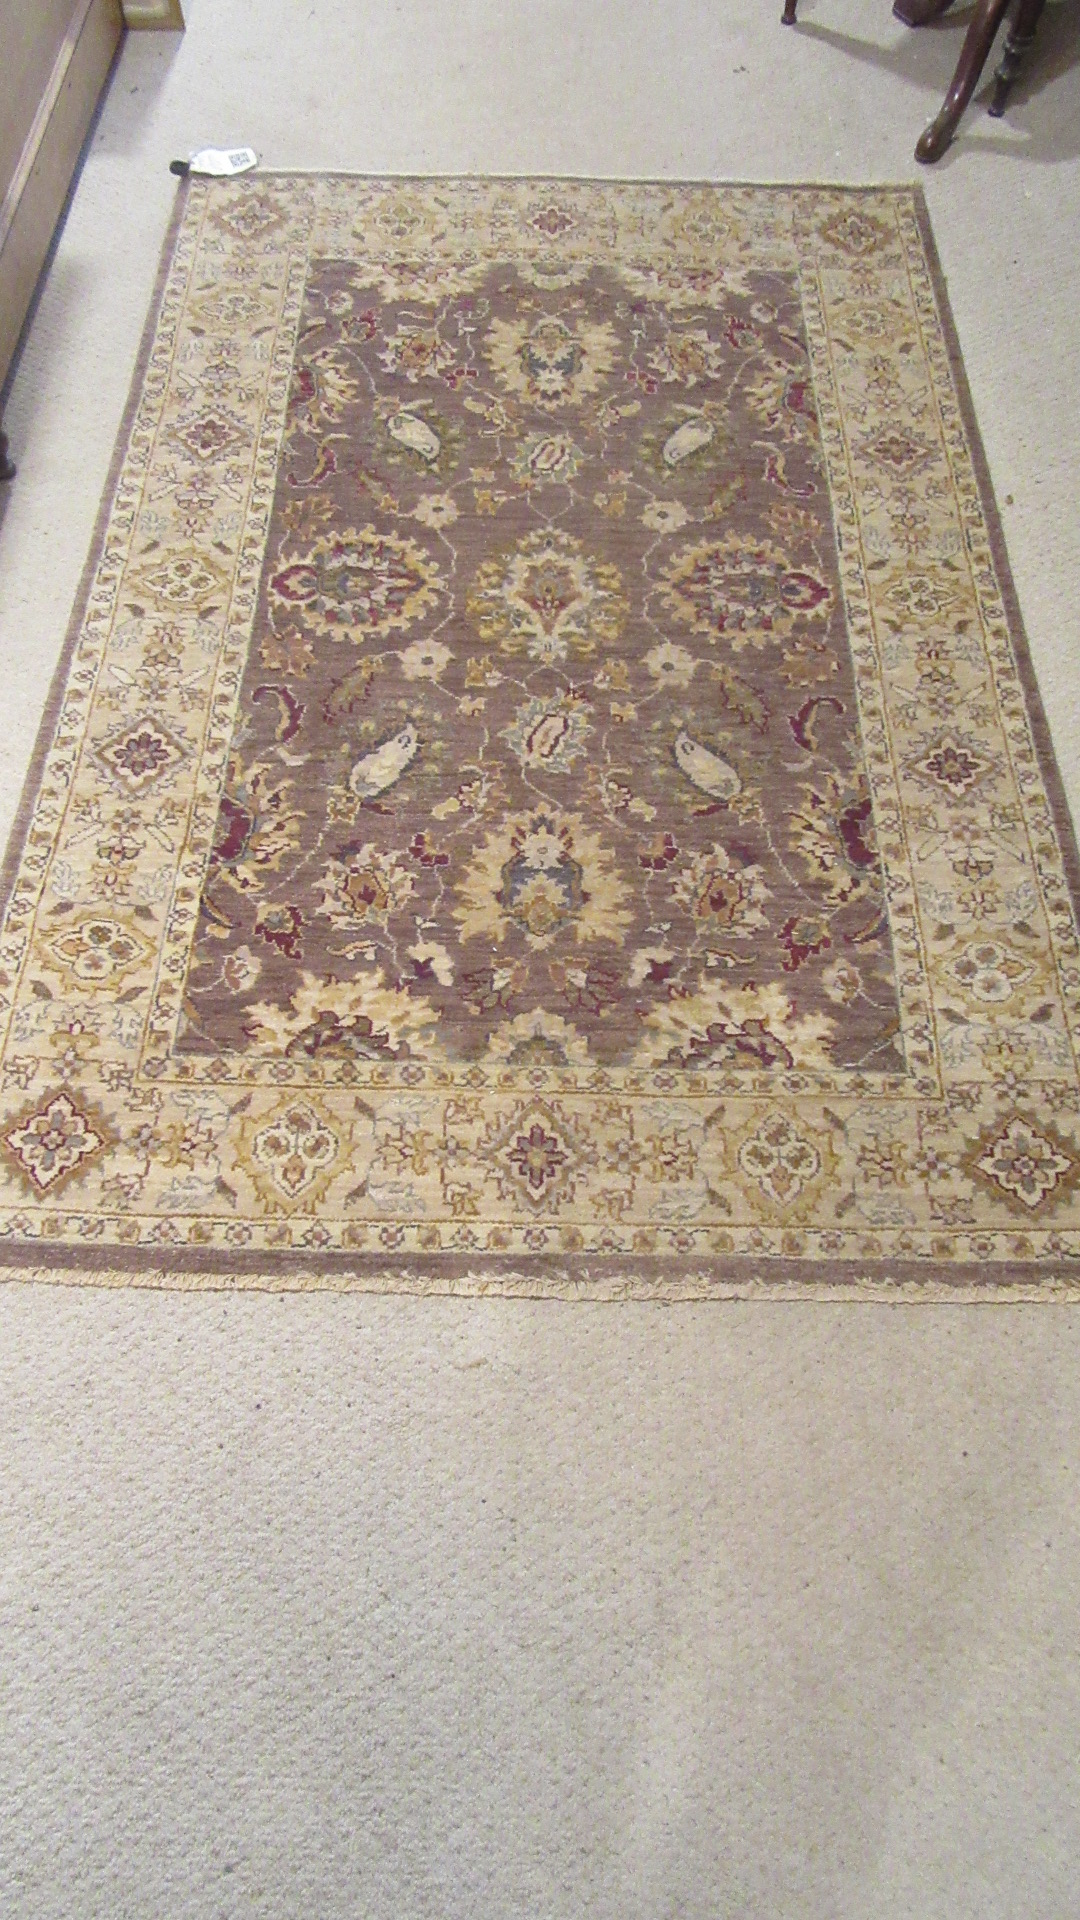 GOOD QUALITY GAZNI HAND MADE RUG